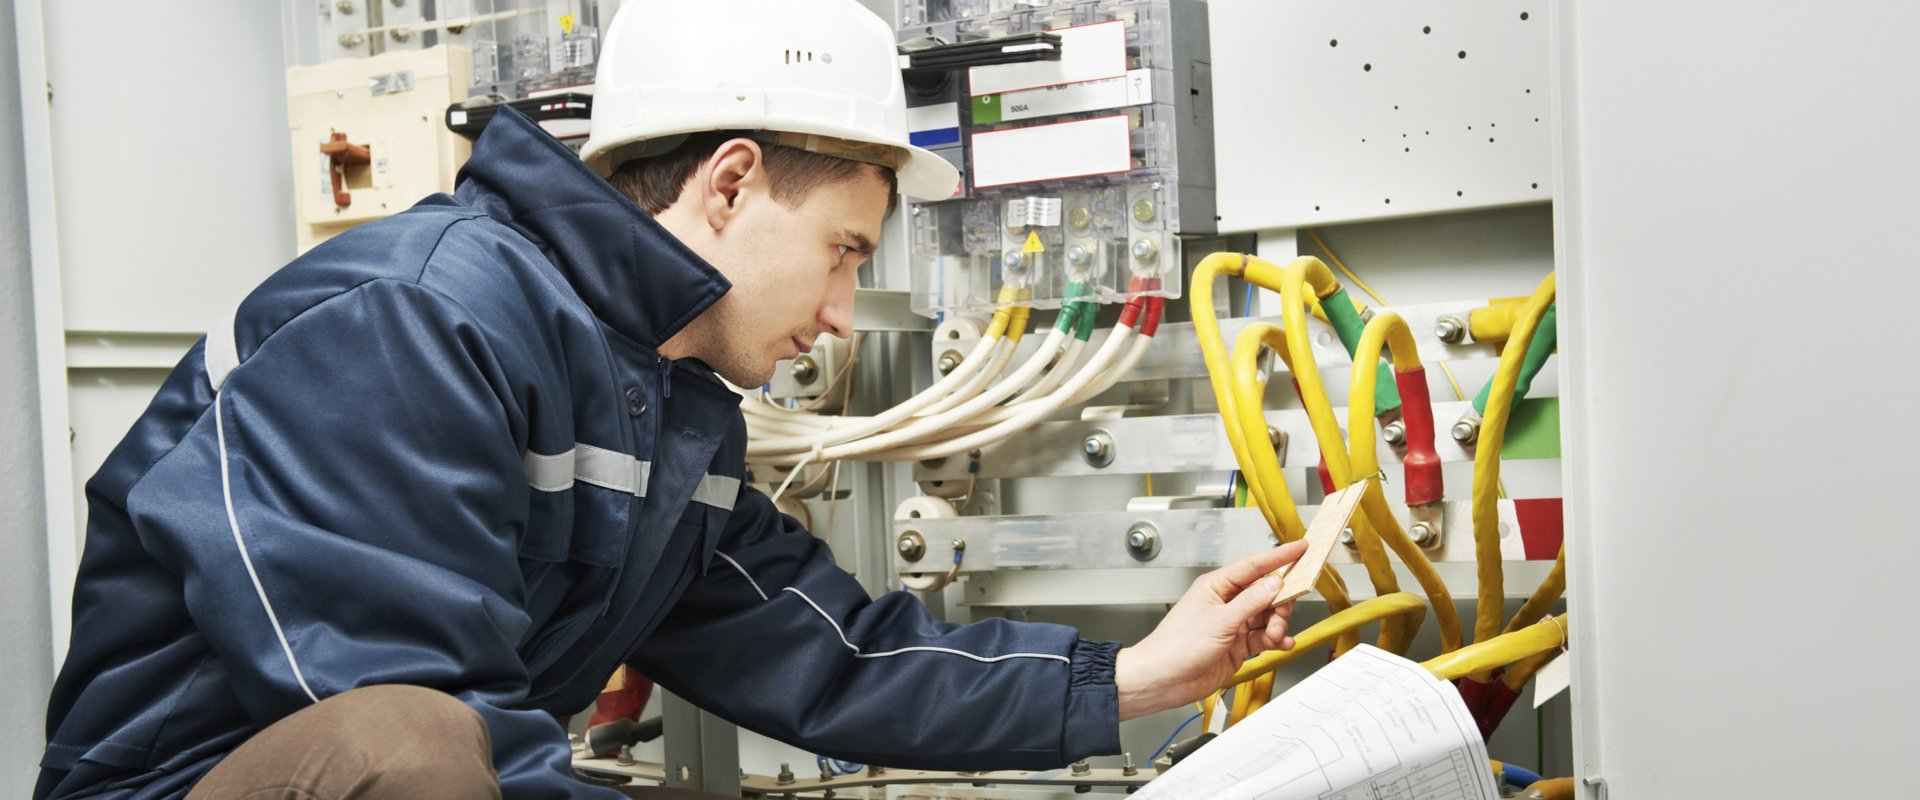 """electrical system and equipment maintenance Study shows service plans reduce incidents of unexpected electrical failure by 66% sustainability embedded in electrical equipment secure power services: why a smooth """"handover"""" is vital to a lifecycle approach preventive maintenance: longer life for your electrical distribution equipment at optimal costs."""